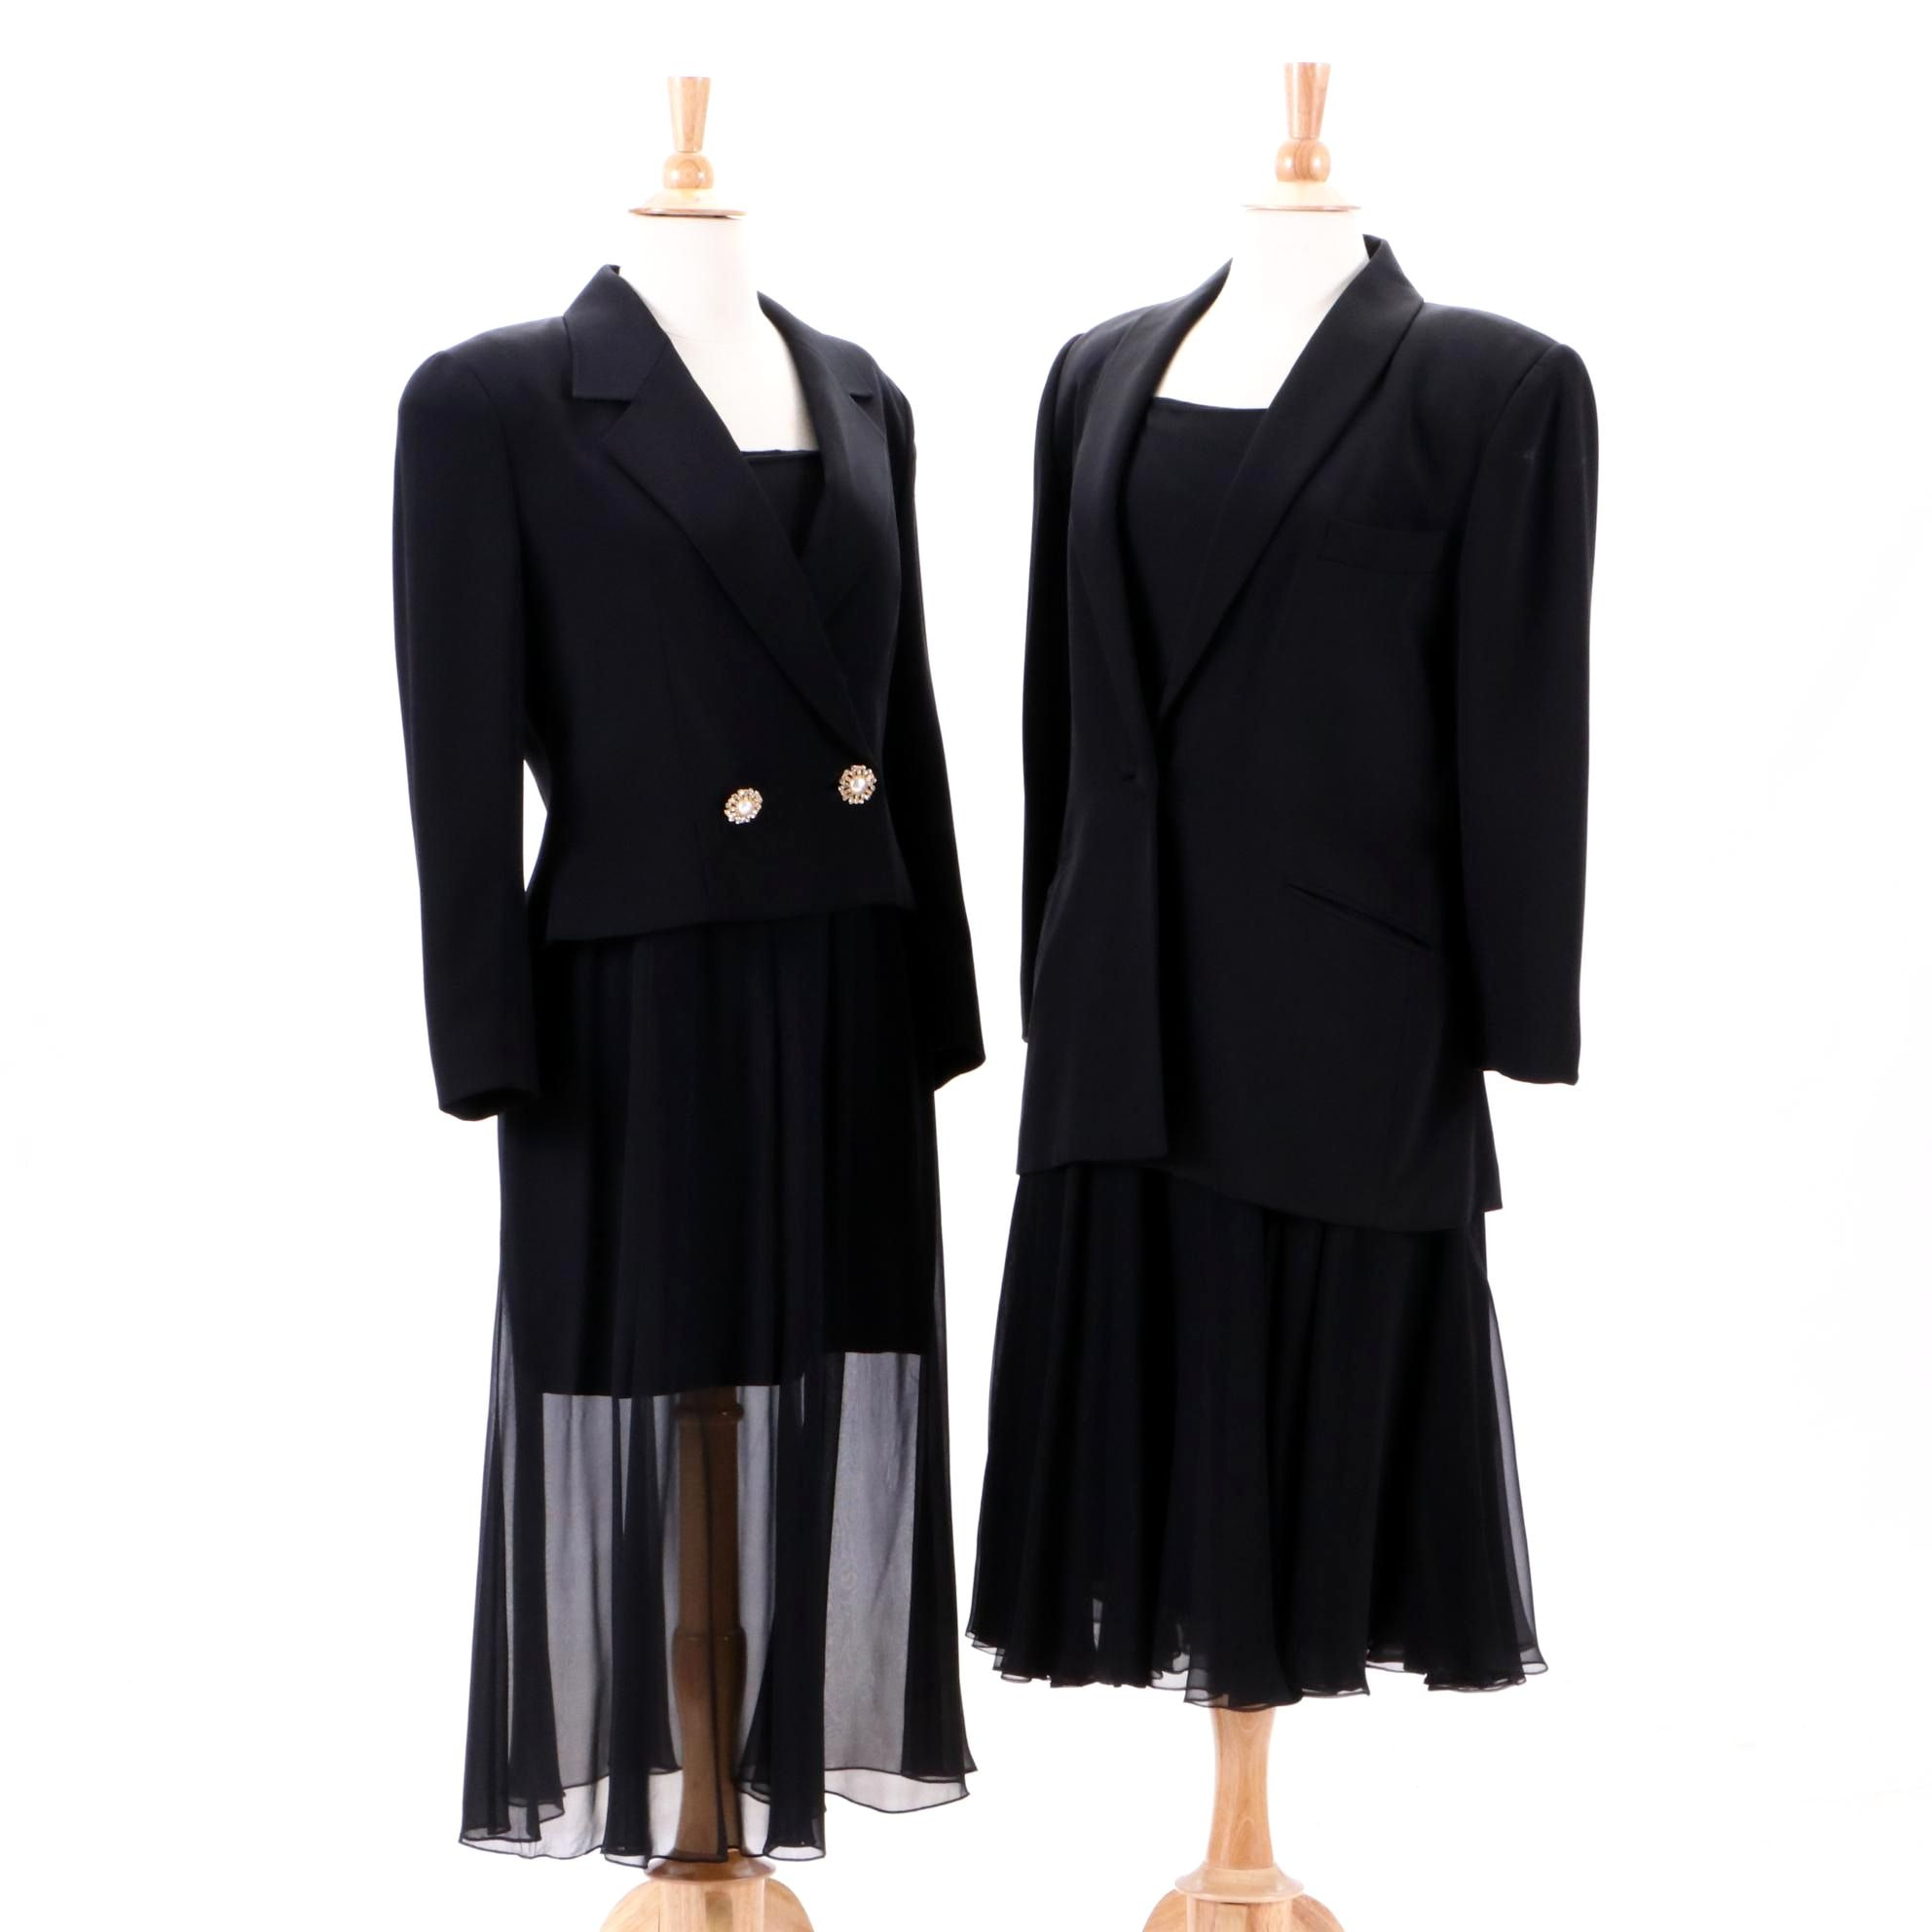 Vintage Henri Bendel Black Blazer and Black Silk Sleeveless Cocktail Dresses